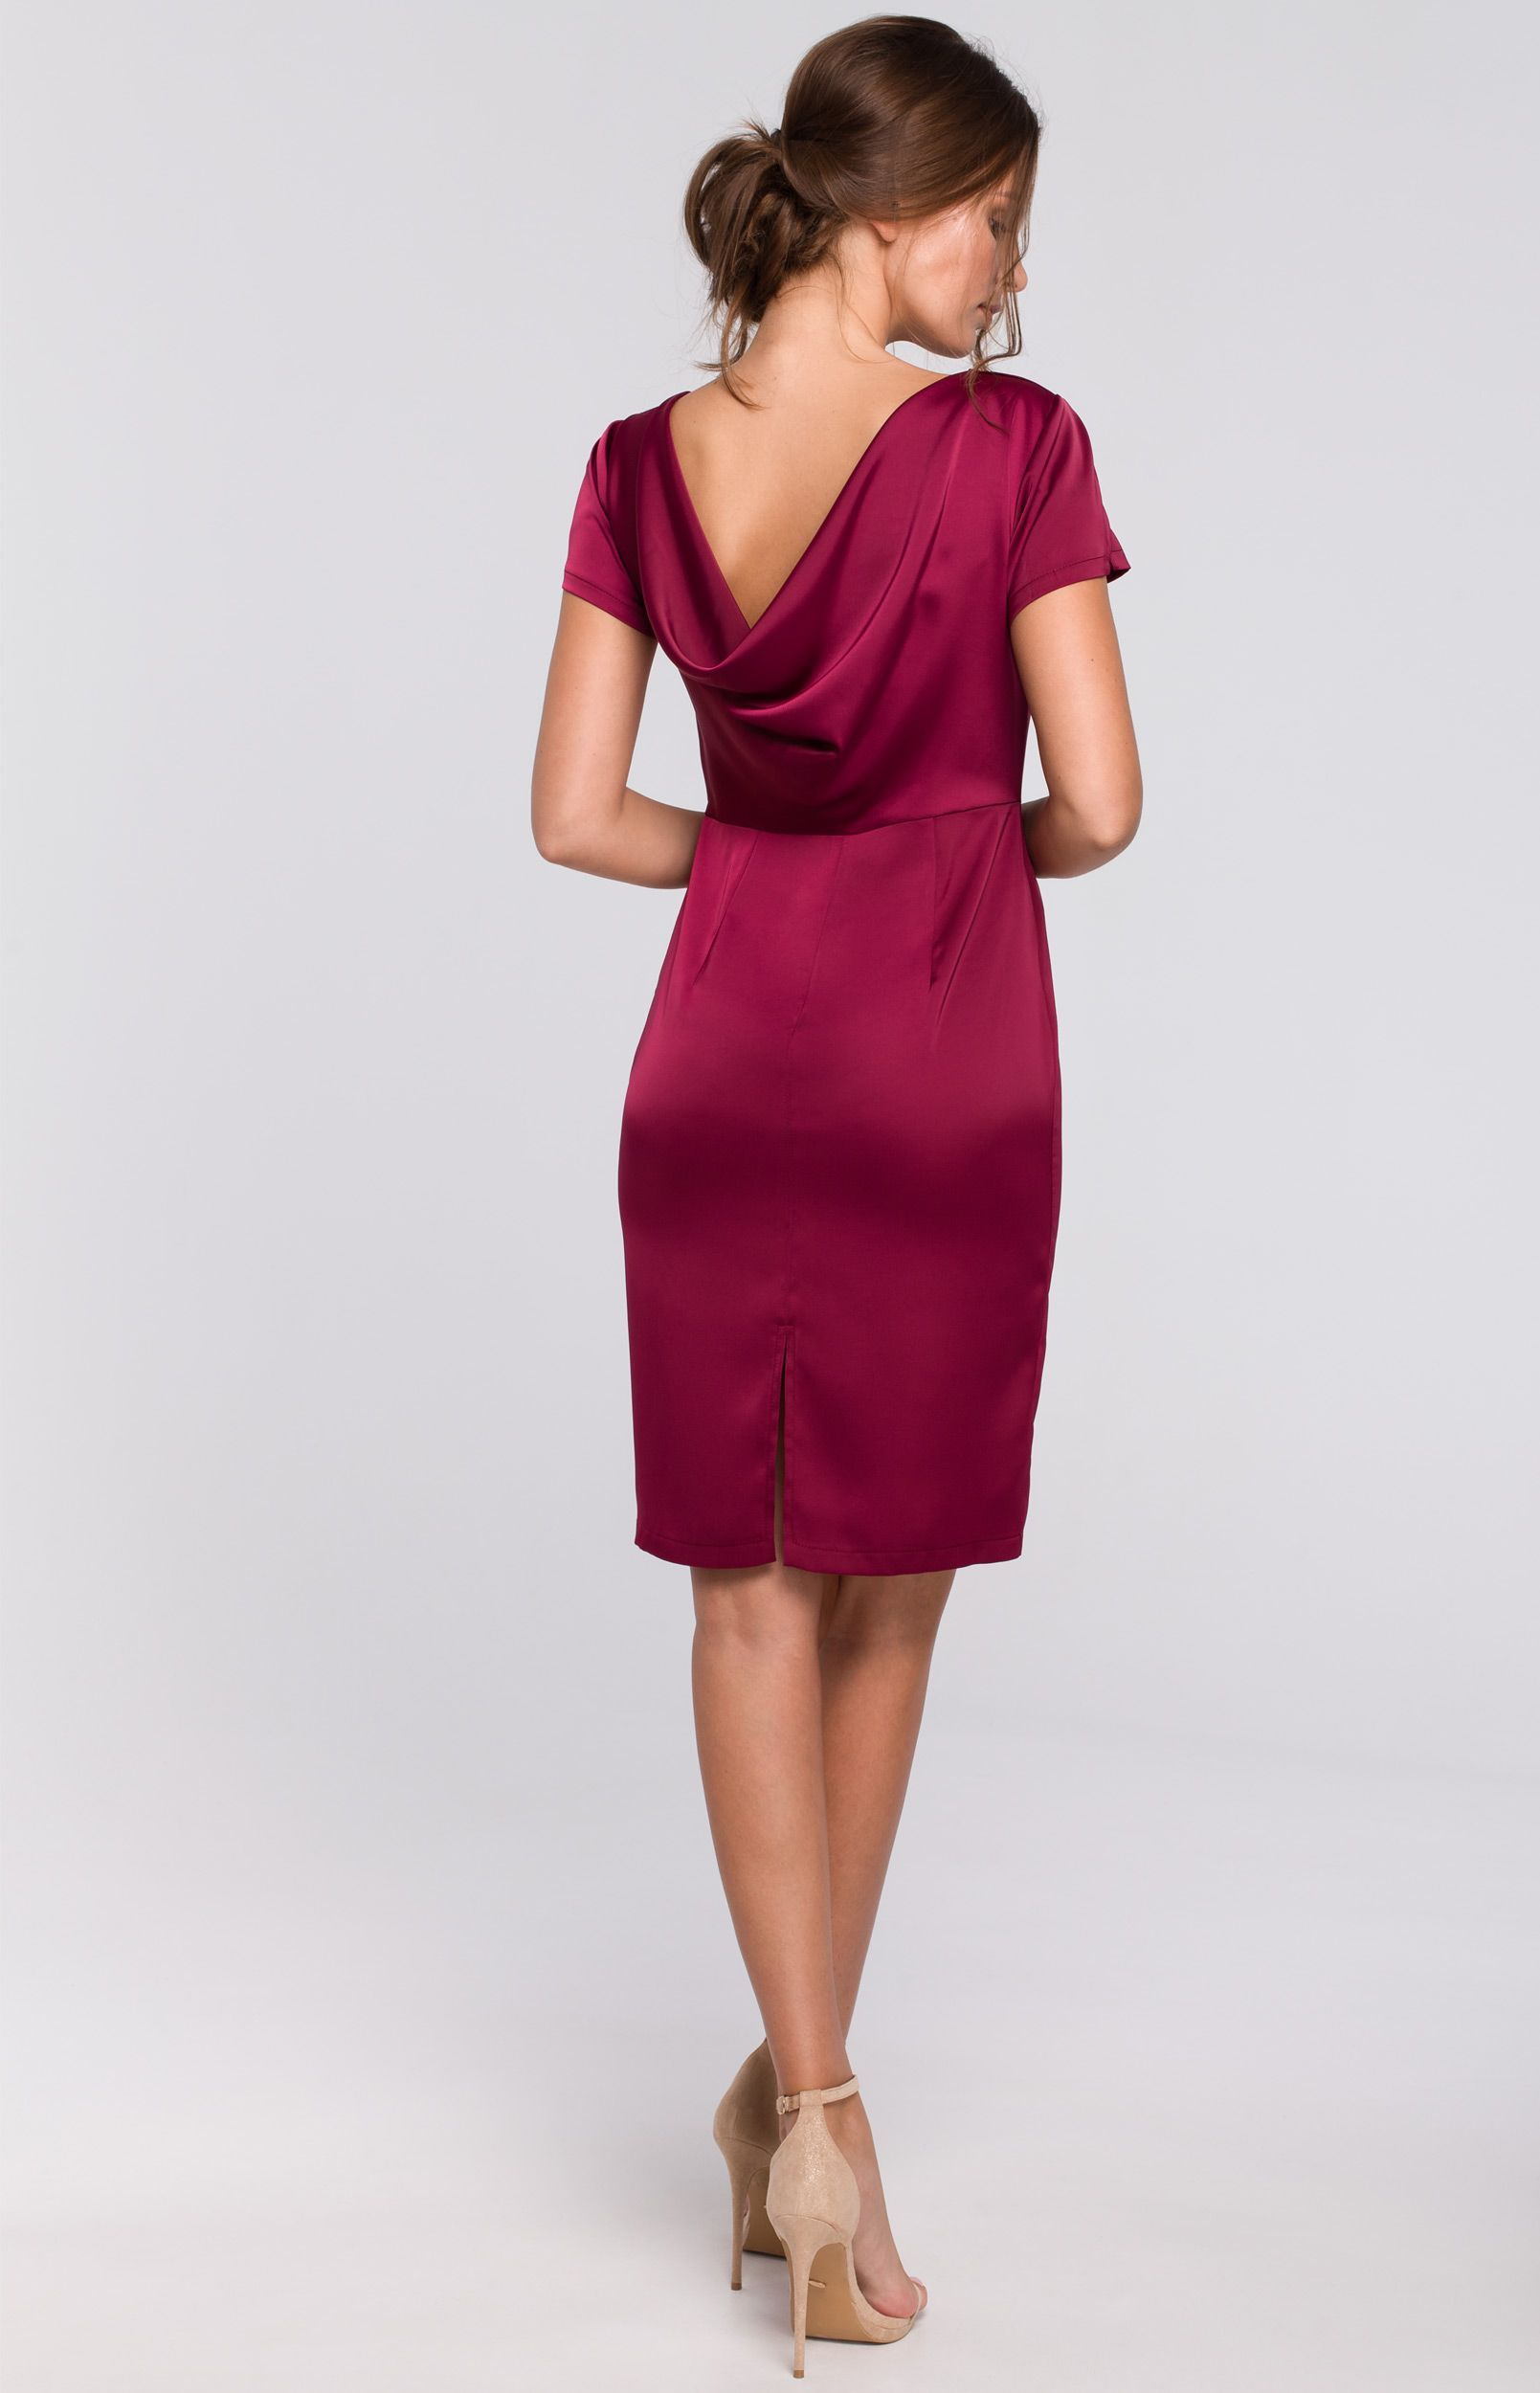 Robe Fourreau Satin Bordeaux En 2020 Robe Fourreau Chic Robe Fourreau Et Robe Fushia